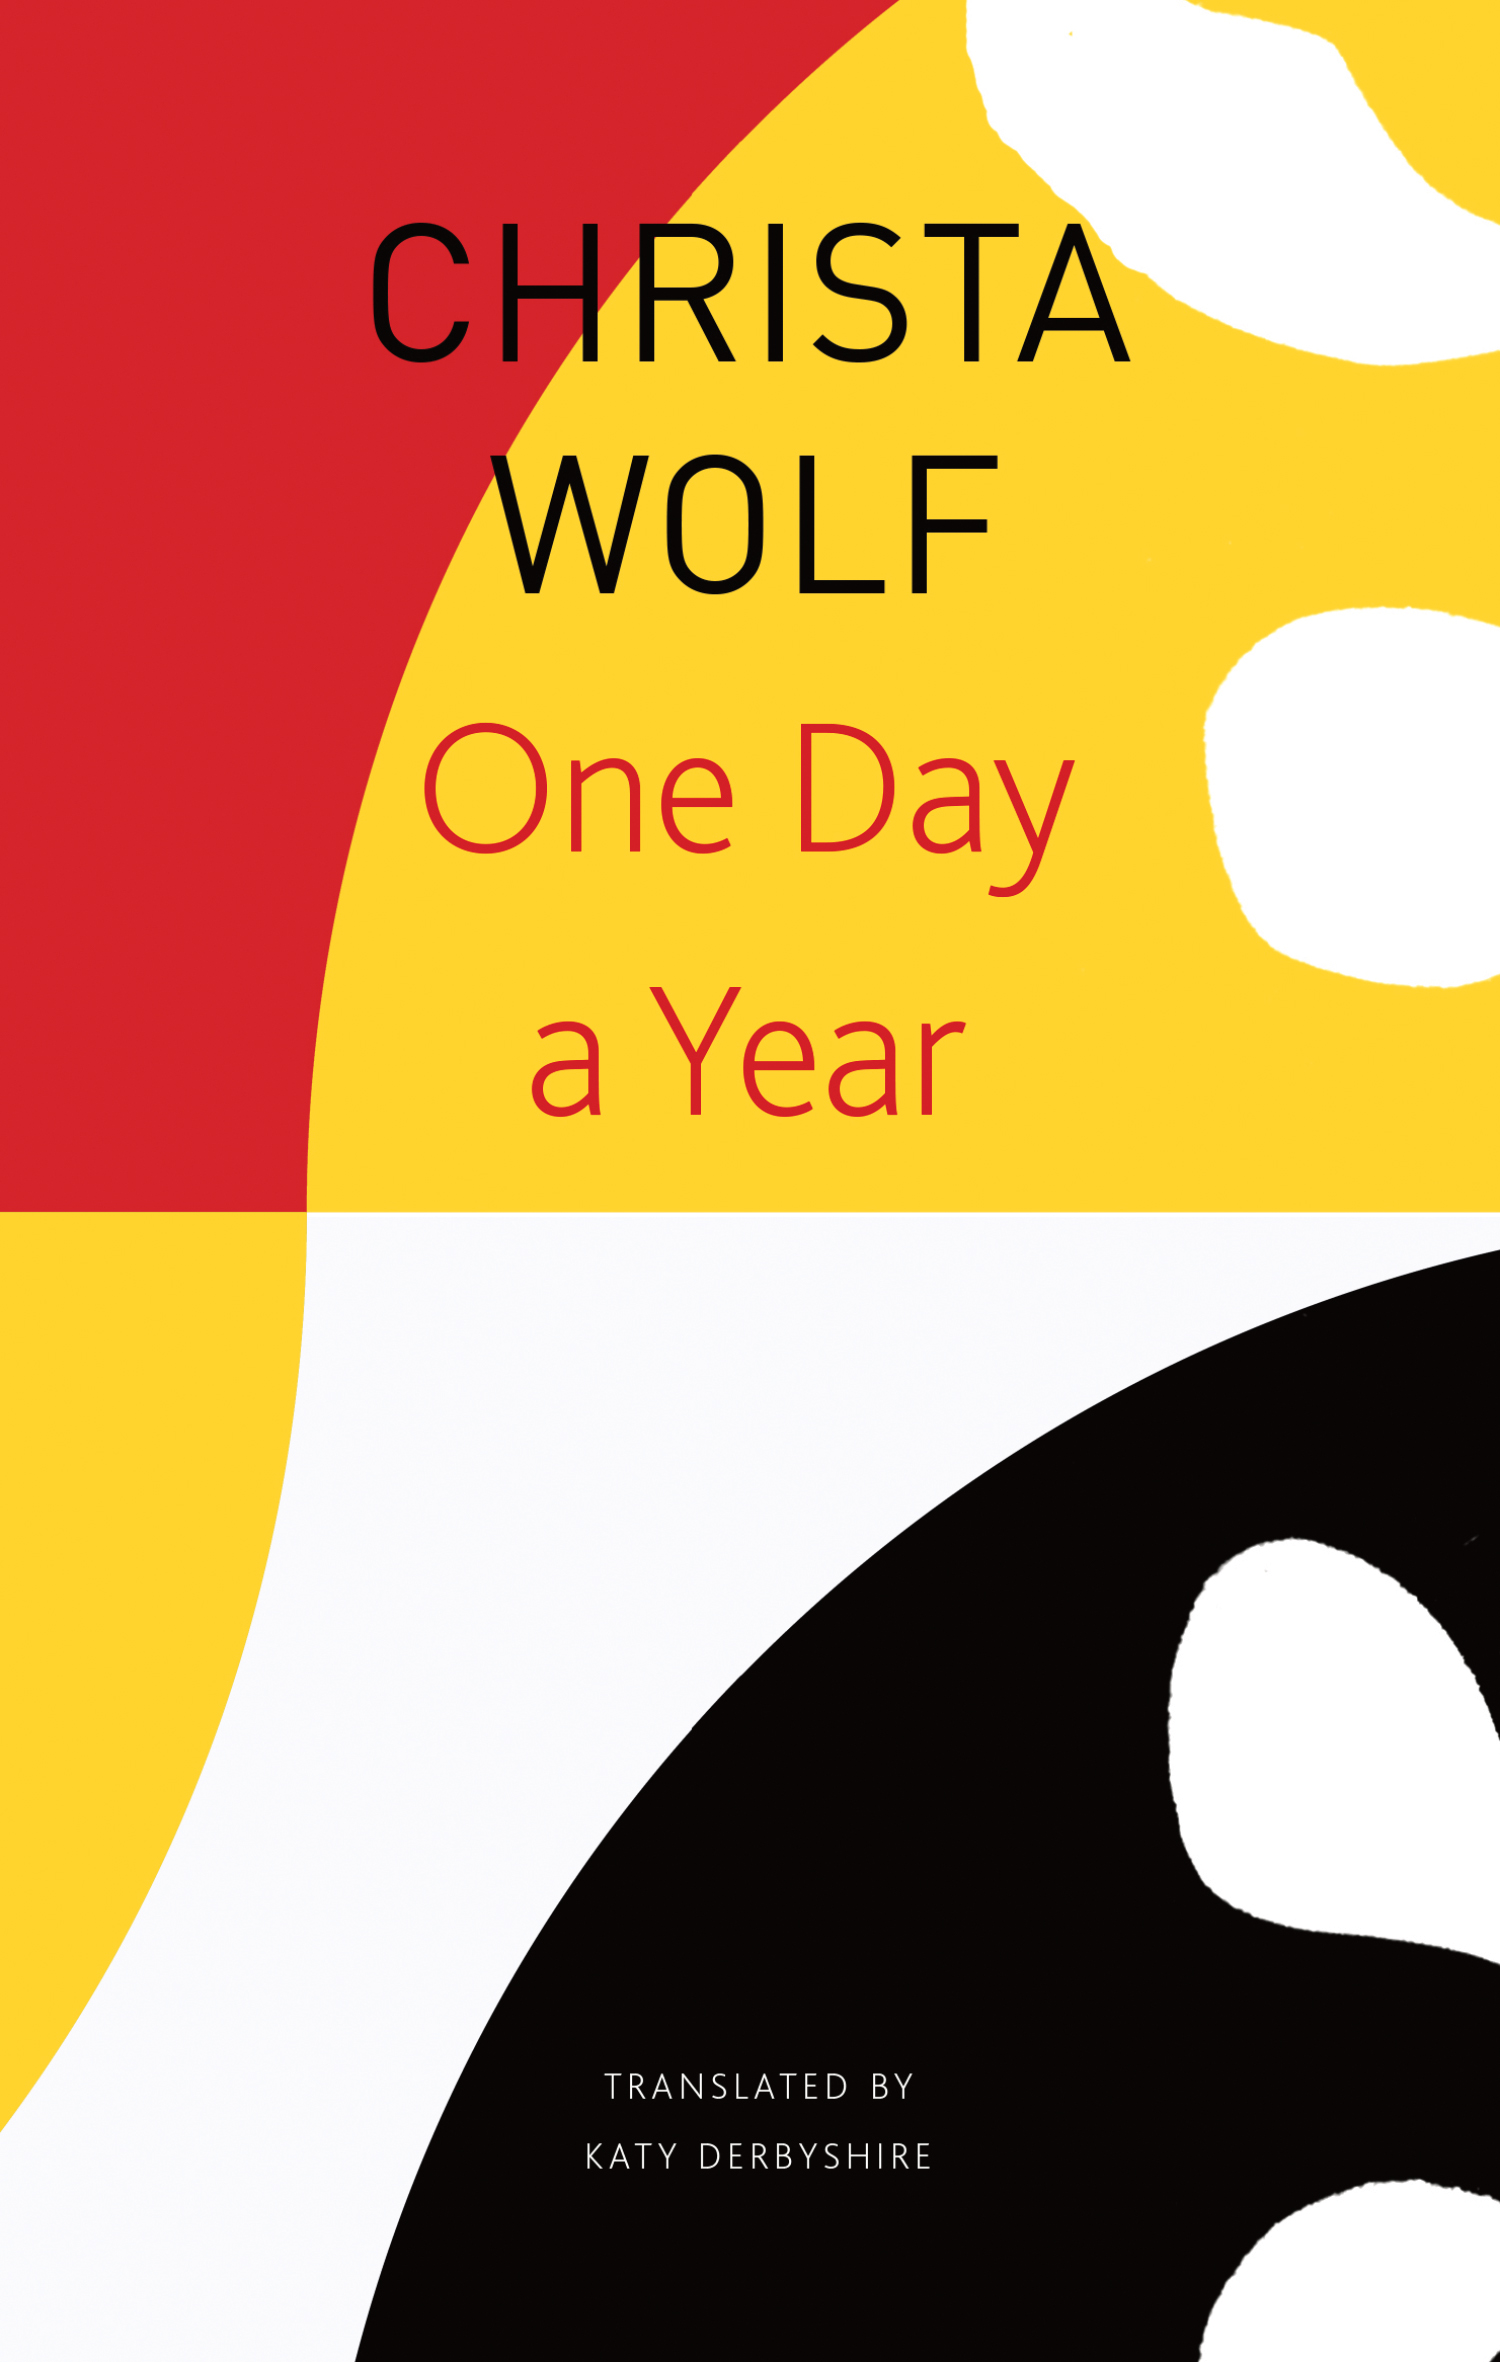 One Day a Year by Christa Wolf | Seagull Books